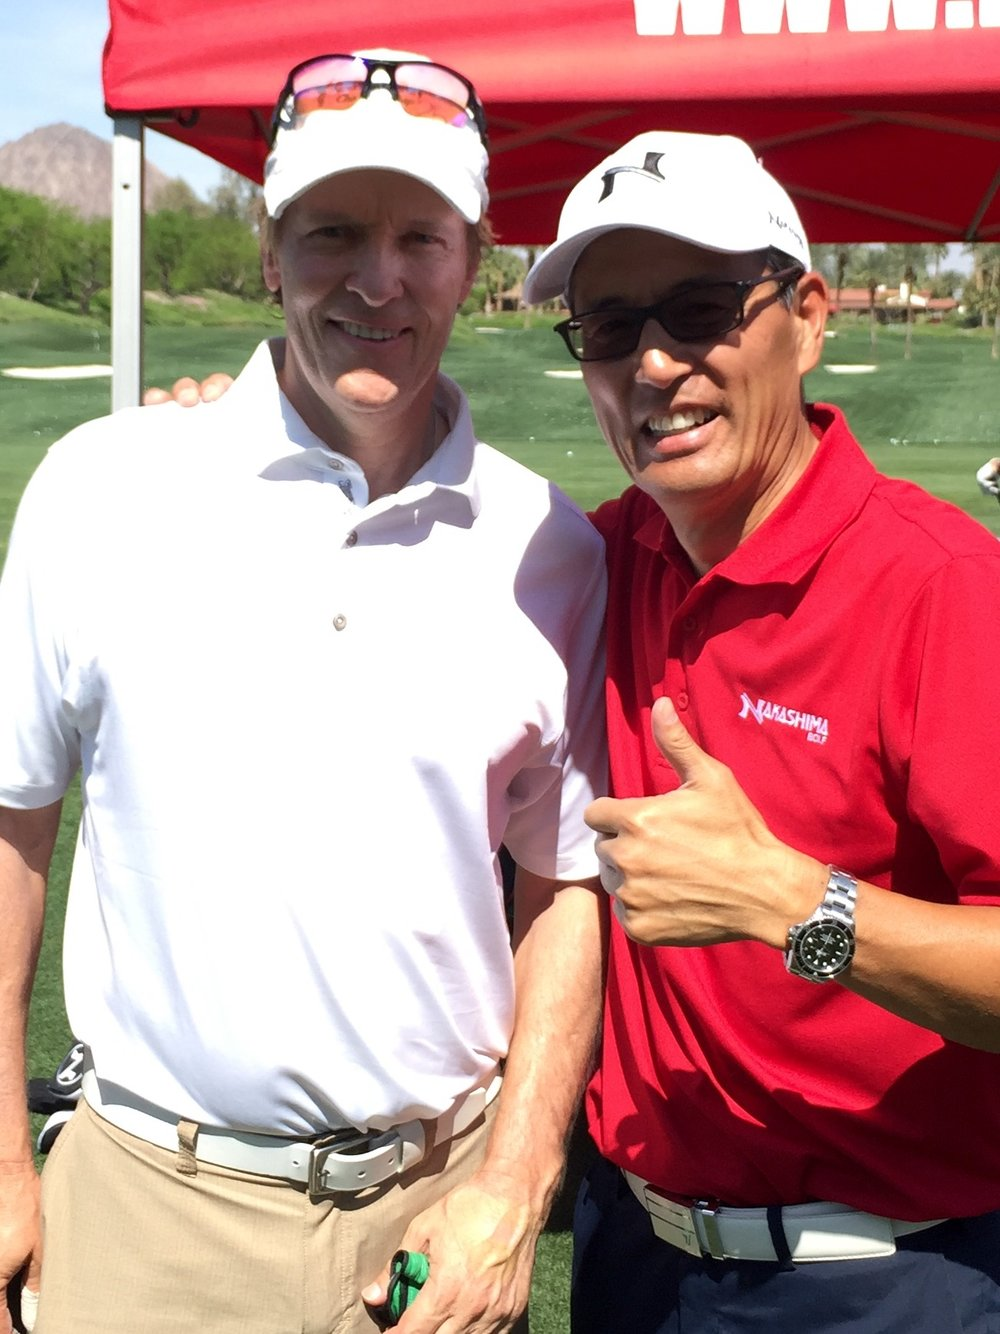 Jack Wagner (Actor/Singer; General Hospital, Santa Barbara, The Bold and the Beautiful and Melrose Place. 2x champion of the American Century Golf Championship!)